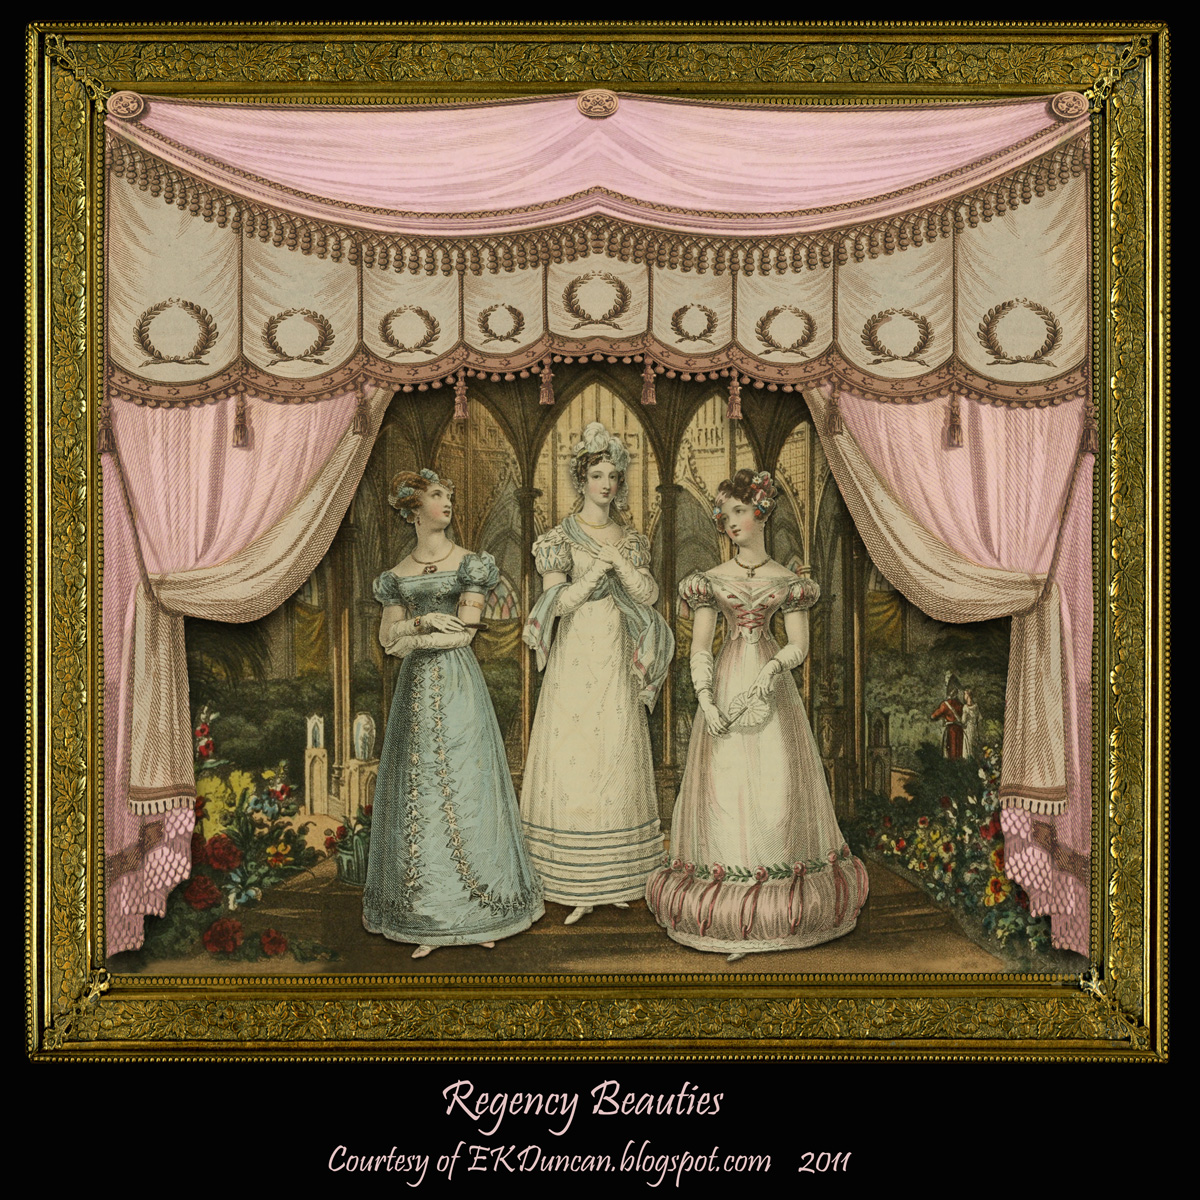 Regency: My Fanciful Muse: Curtains Set The Stage